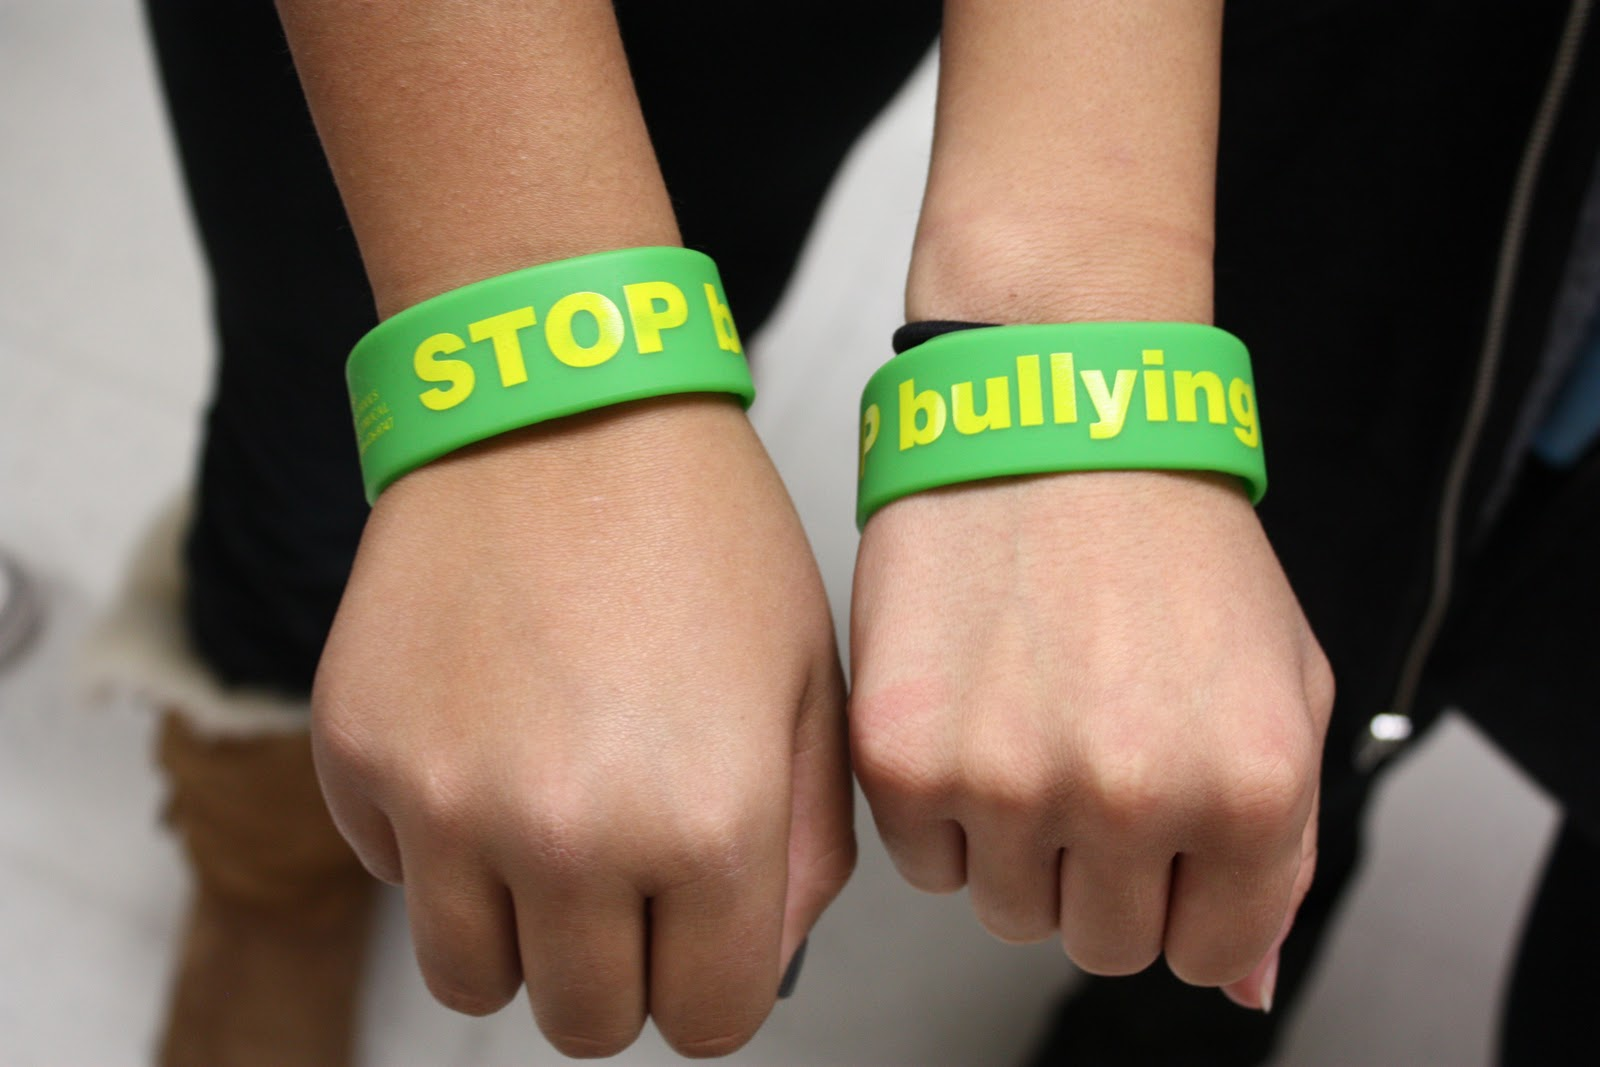 week mary news anti rc bullying bracelet s november langley st latest